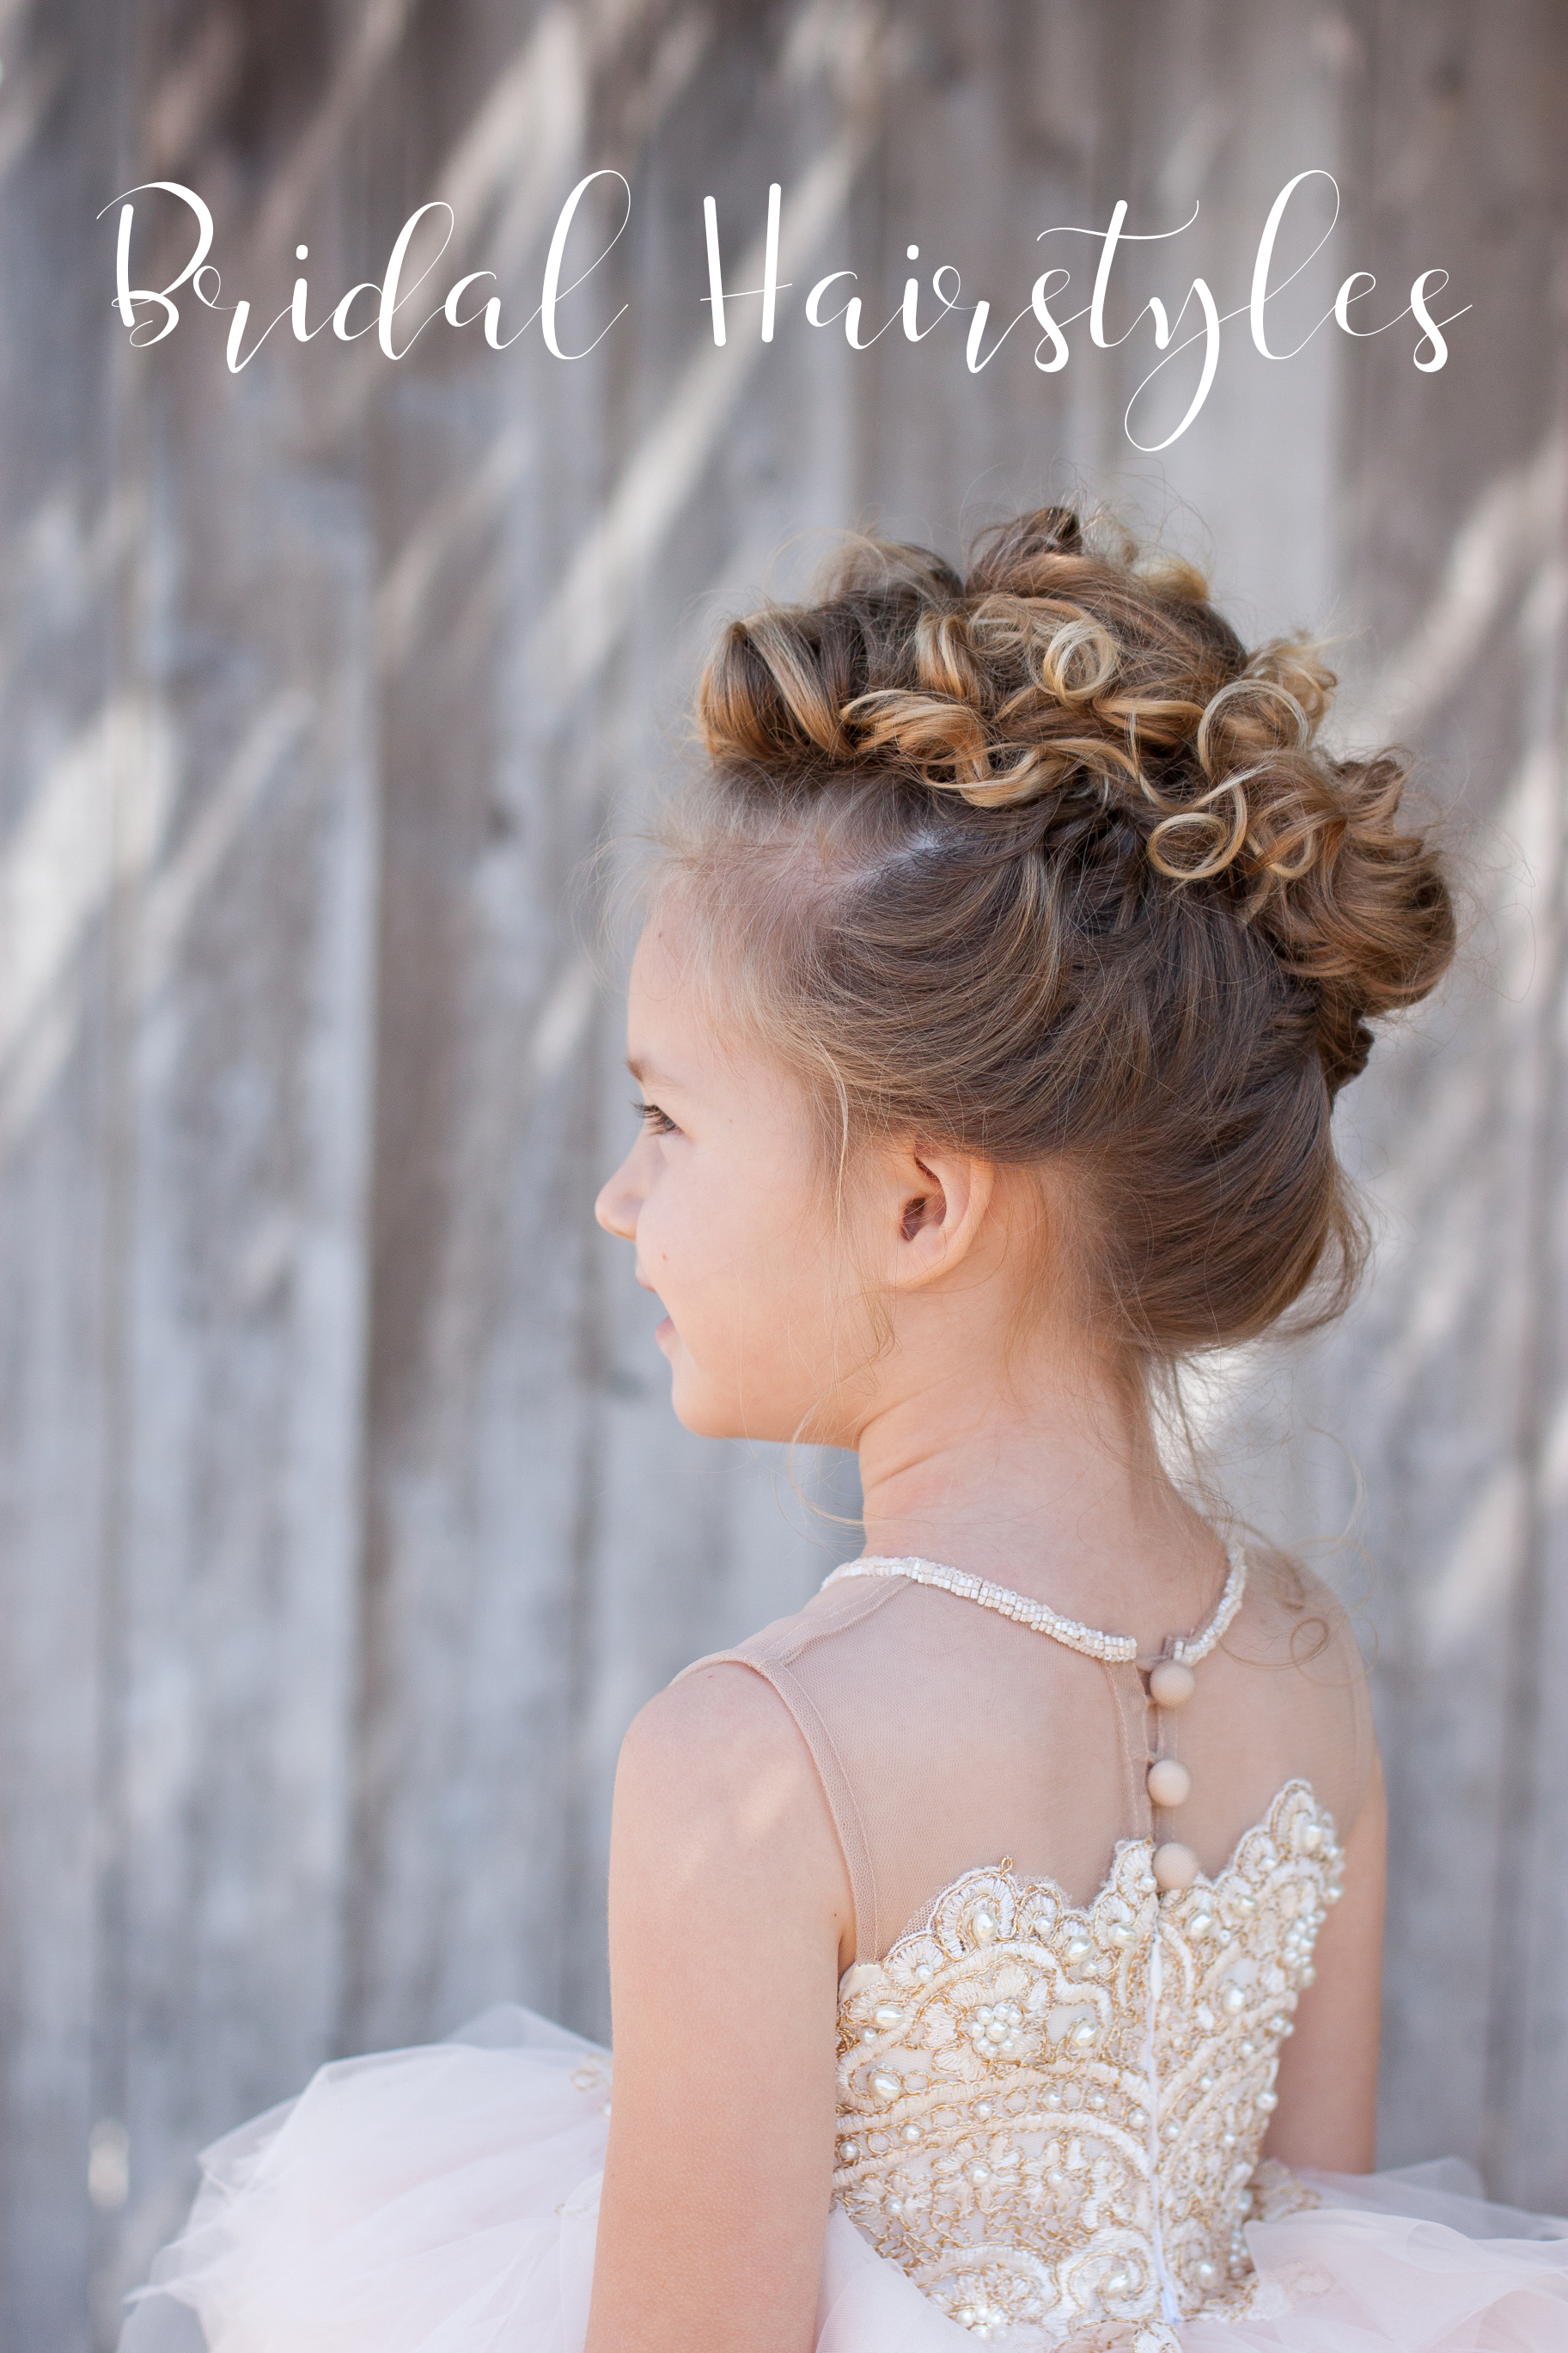 5 Bridal Hairstyles Cute Girls Hairstyles